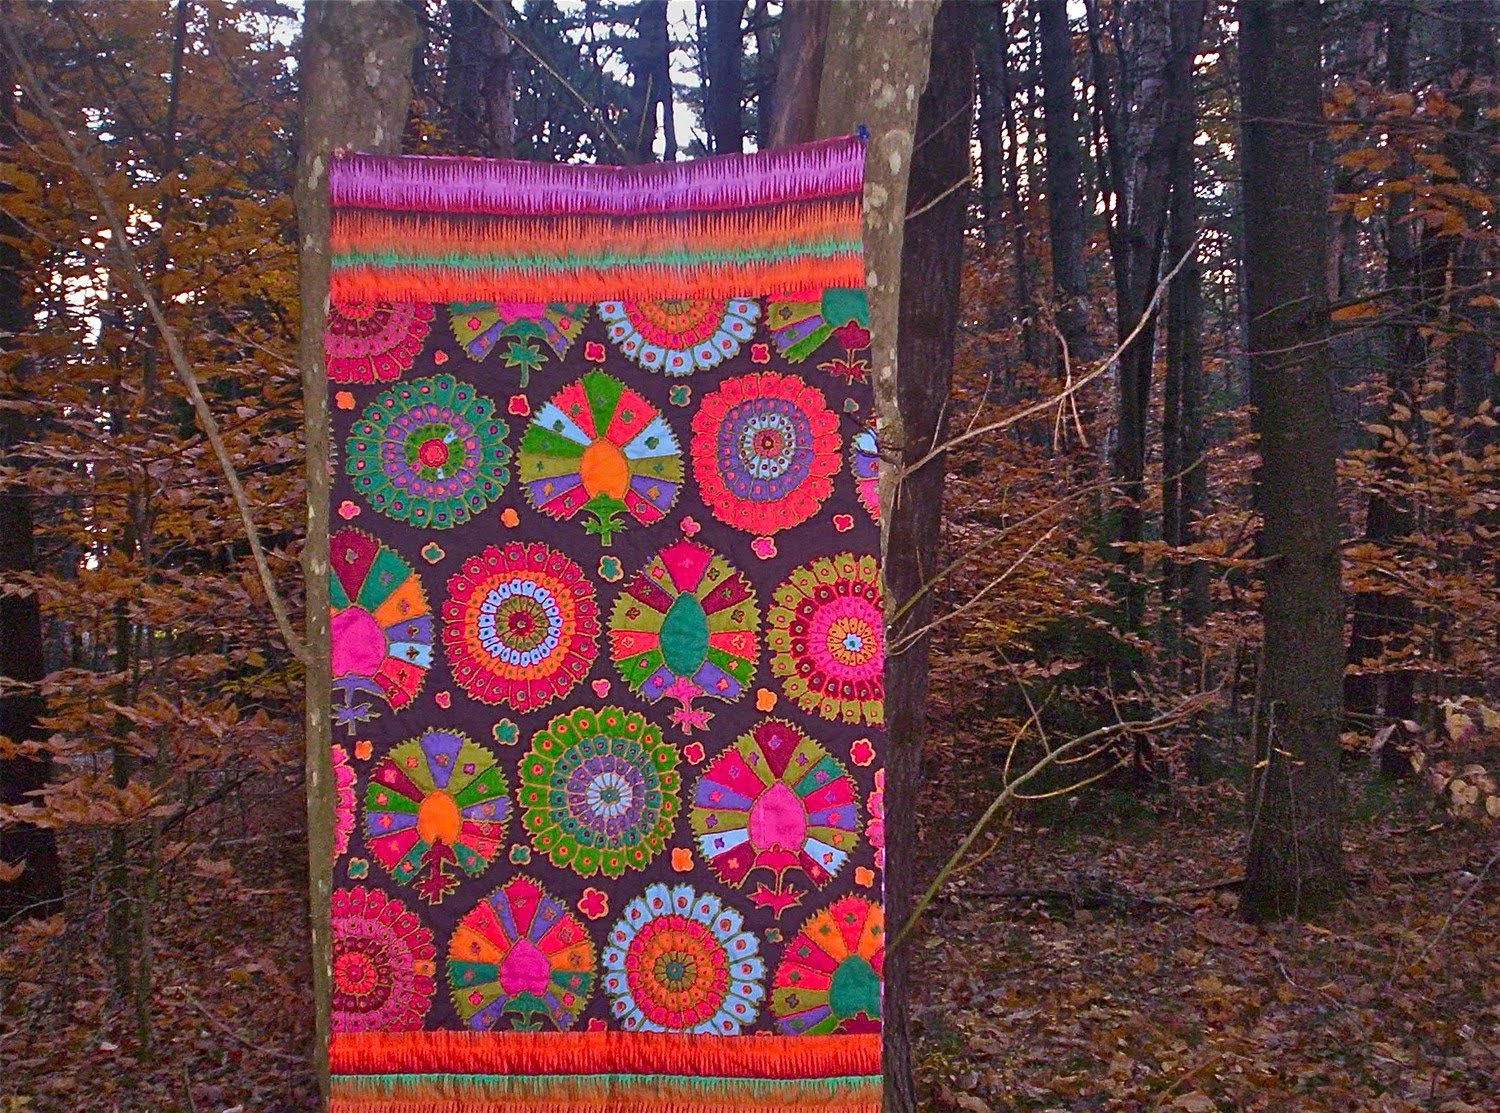 Moonchild Vintage: Quilts, art quilts and wall tapestries~ : artistic quilts - Adamdwight.com